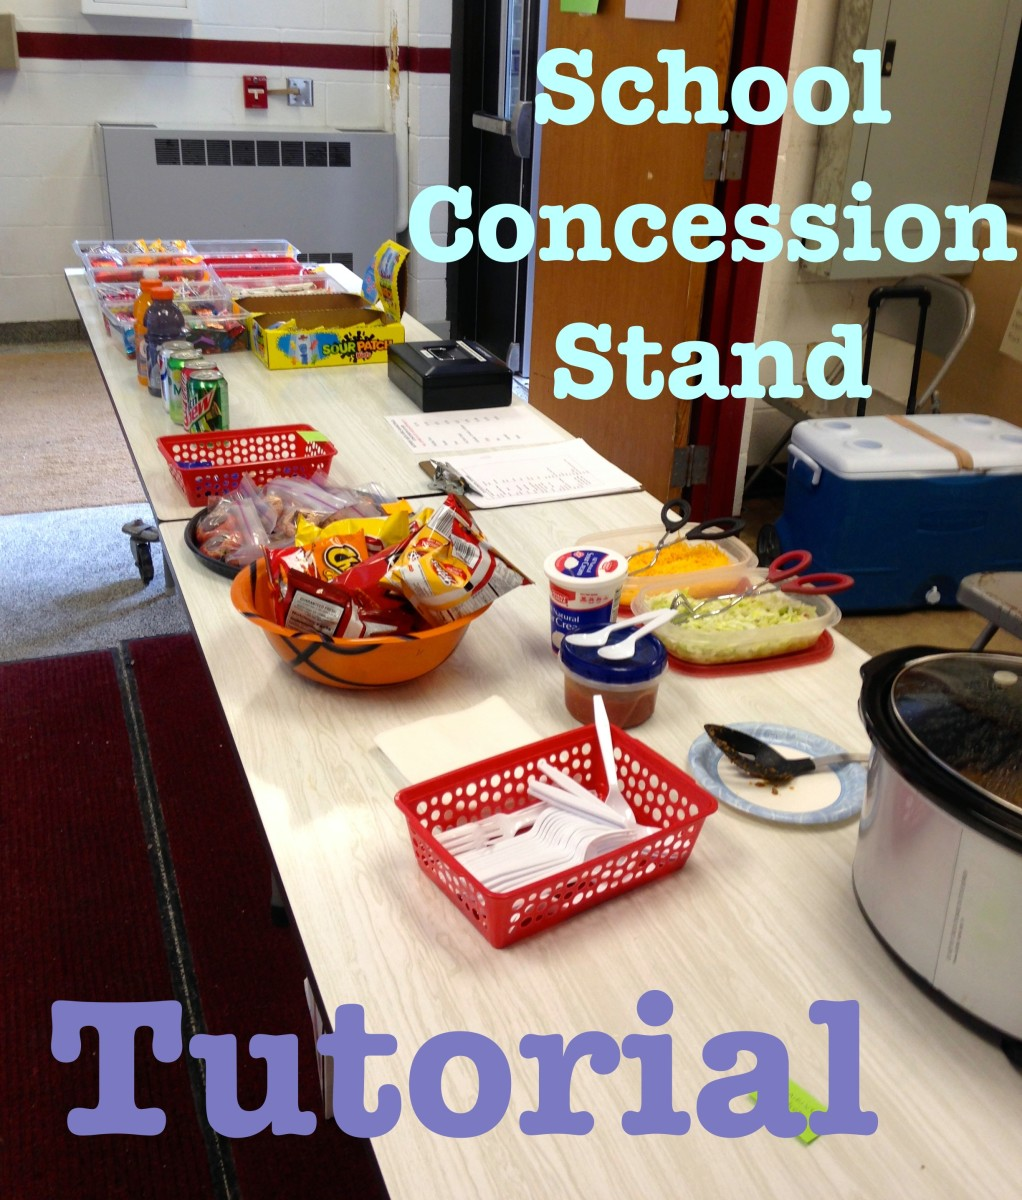 Concession Stand Worker Cover Letter How To Run A School Concession Stand Owlcation